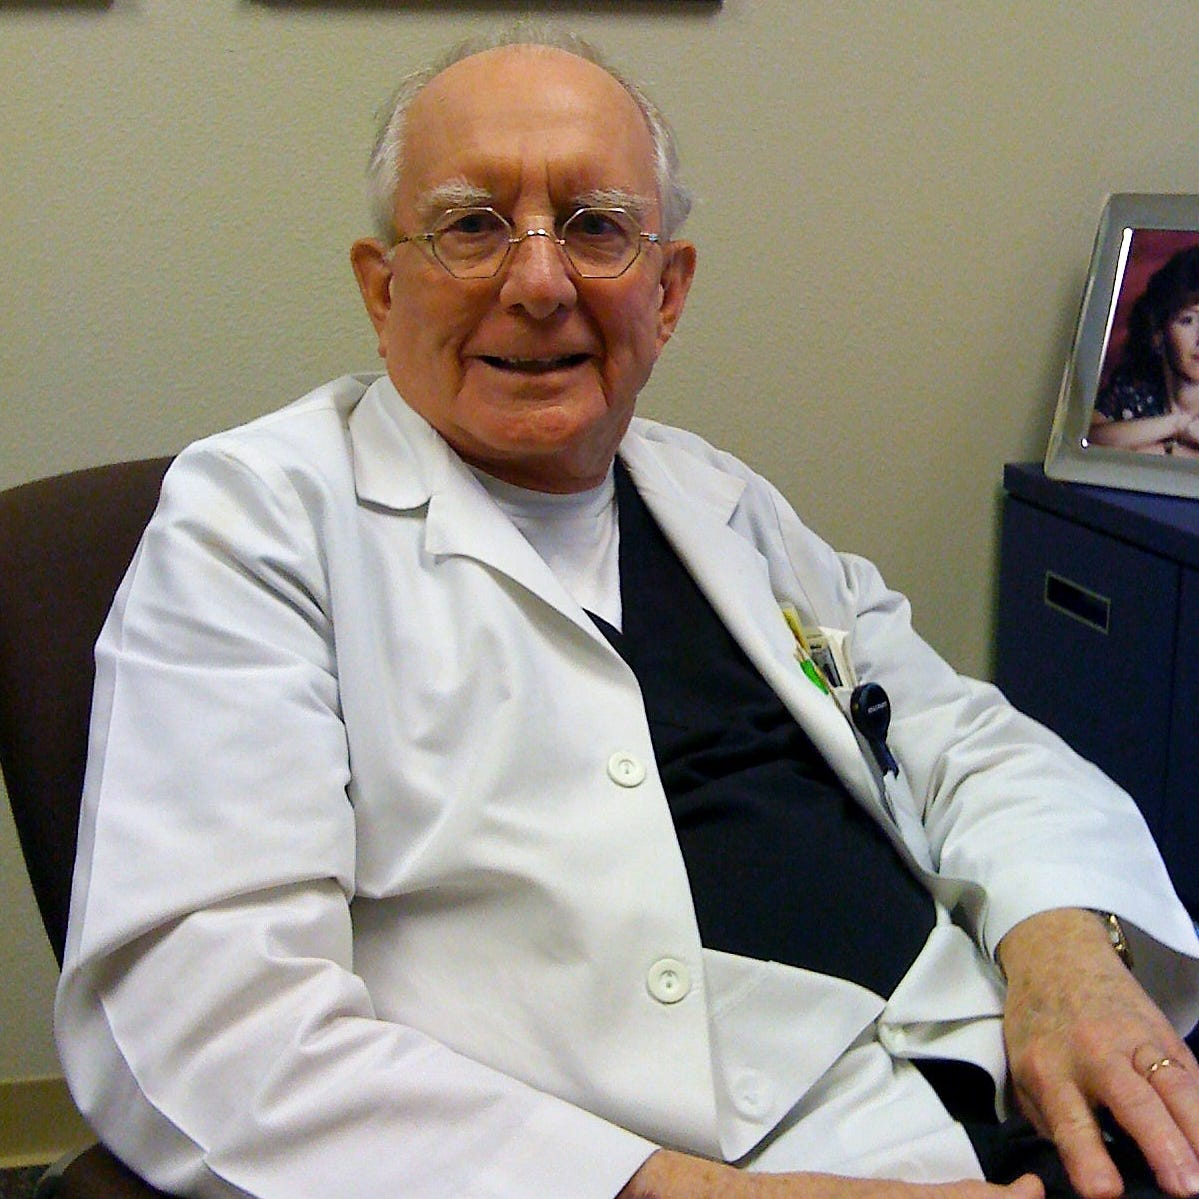 Dr. Jack Bargainer, who performed Abilene's first heart catheterization, dies